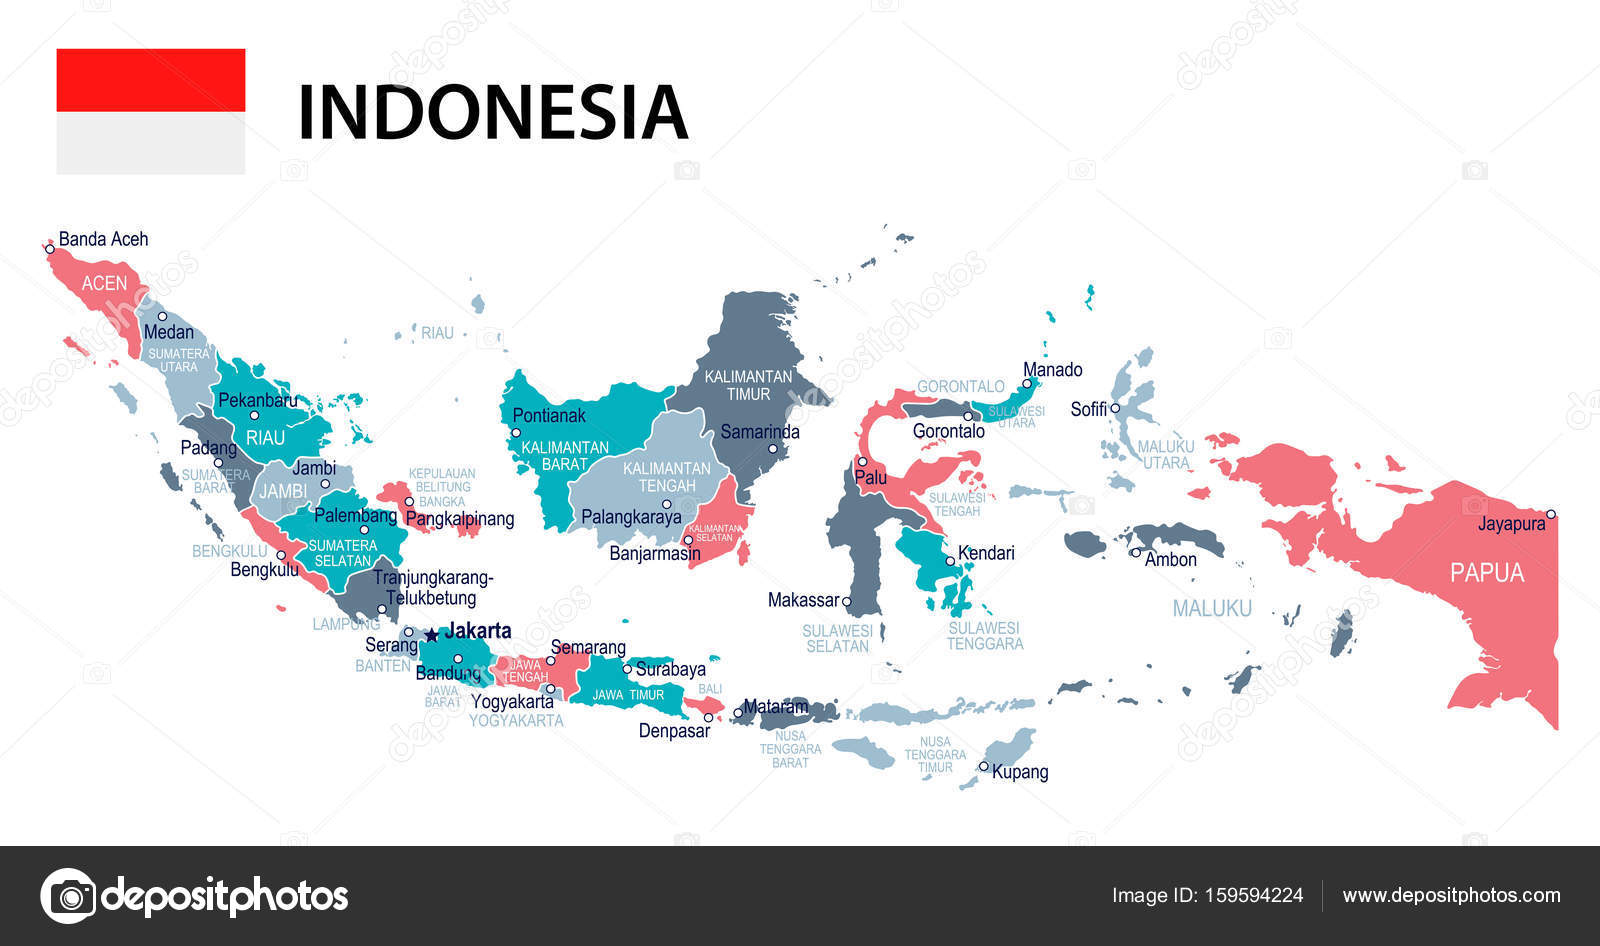 Indonesia map and flag illustration stock vector dikobrazik indonesia map and flag highly detailed vector illustration vector by dikobrazik gumiabroncs Image collections